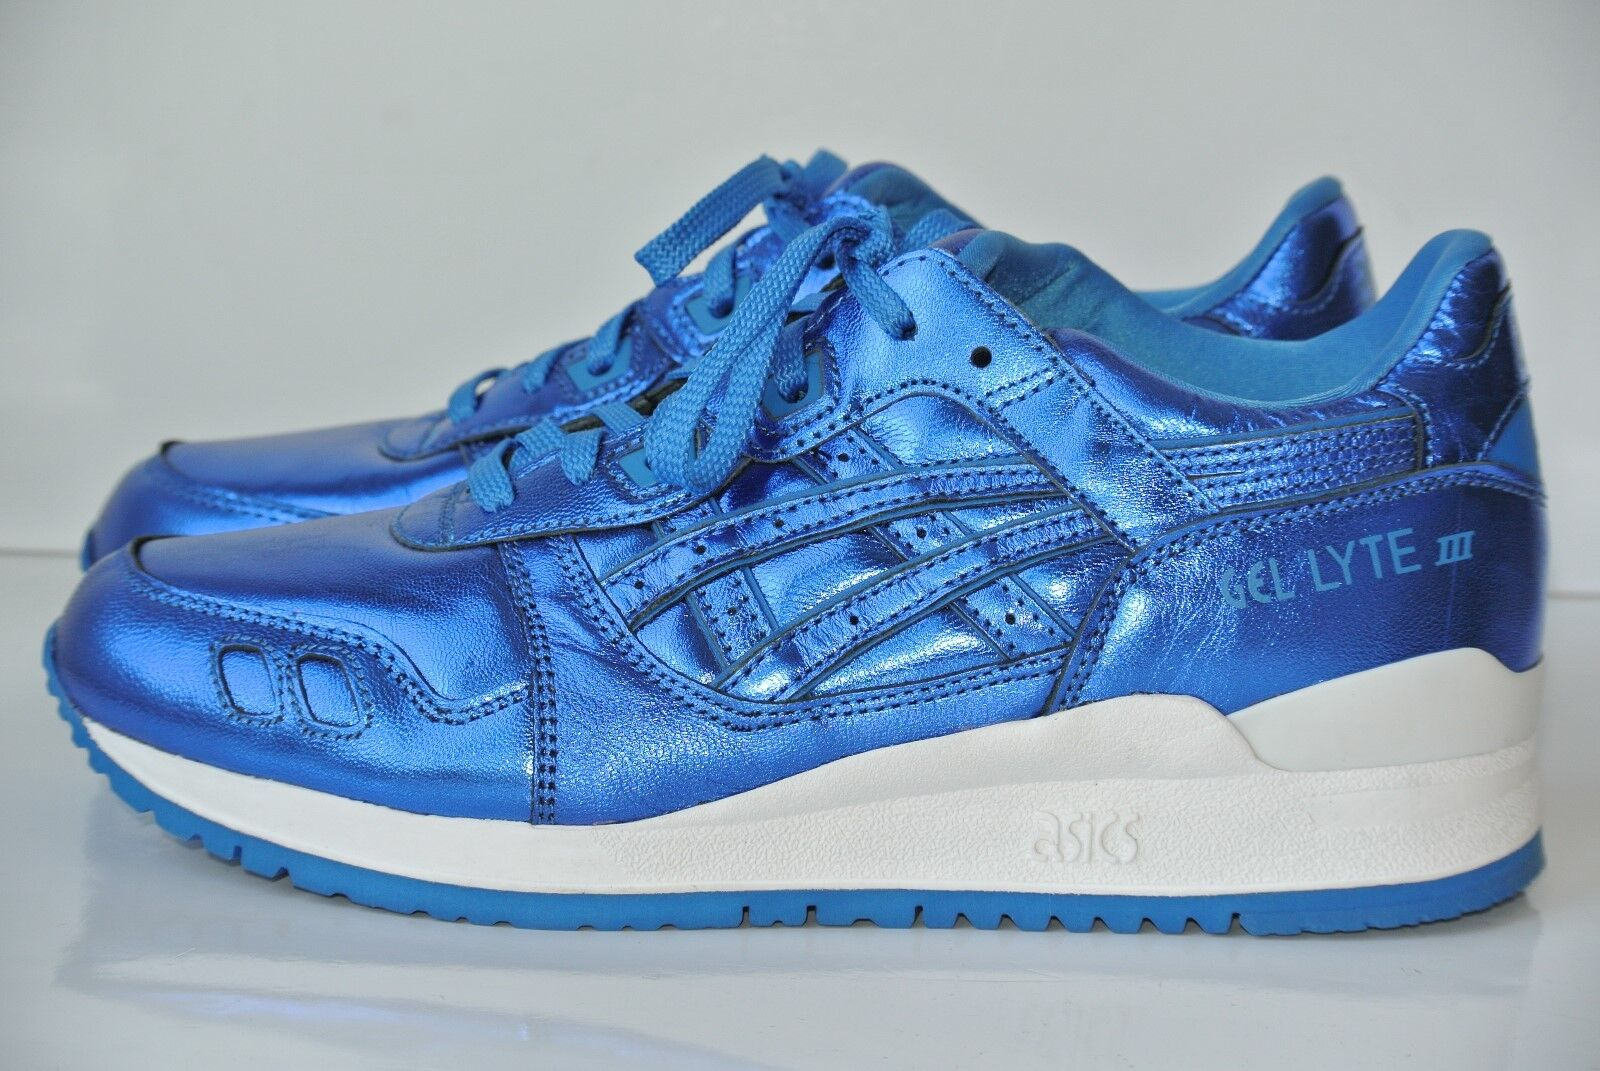 NEW ASICS Gel Lyte Womens Sz 7.5 Kith Atmos Blue Metallic Running Shoes H6E5L best-selling model of the brand